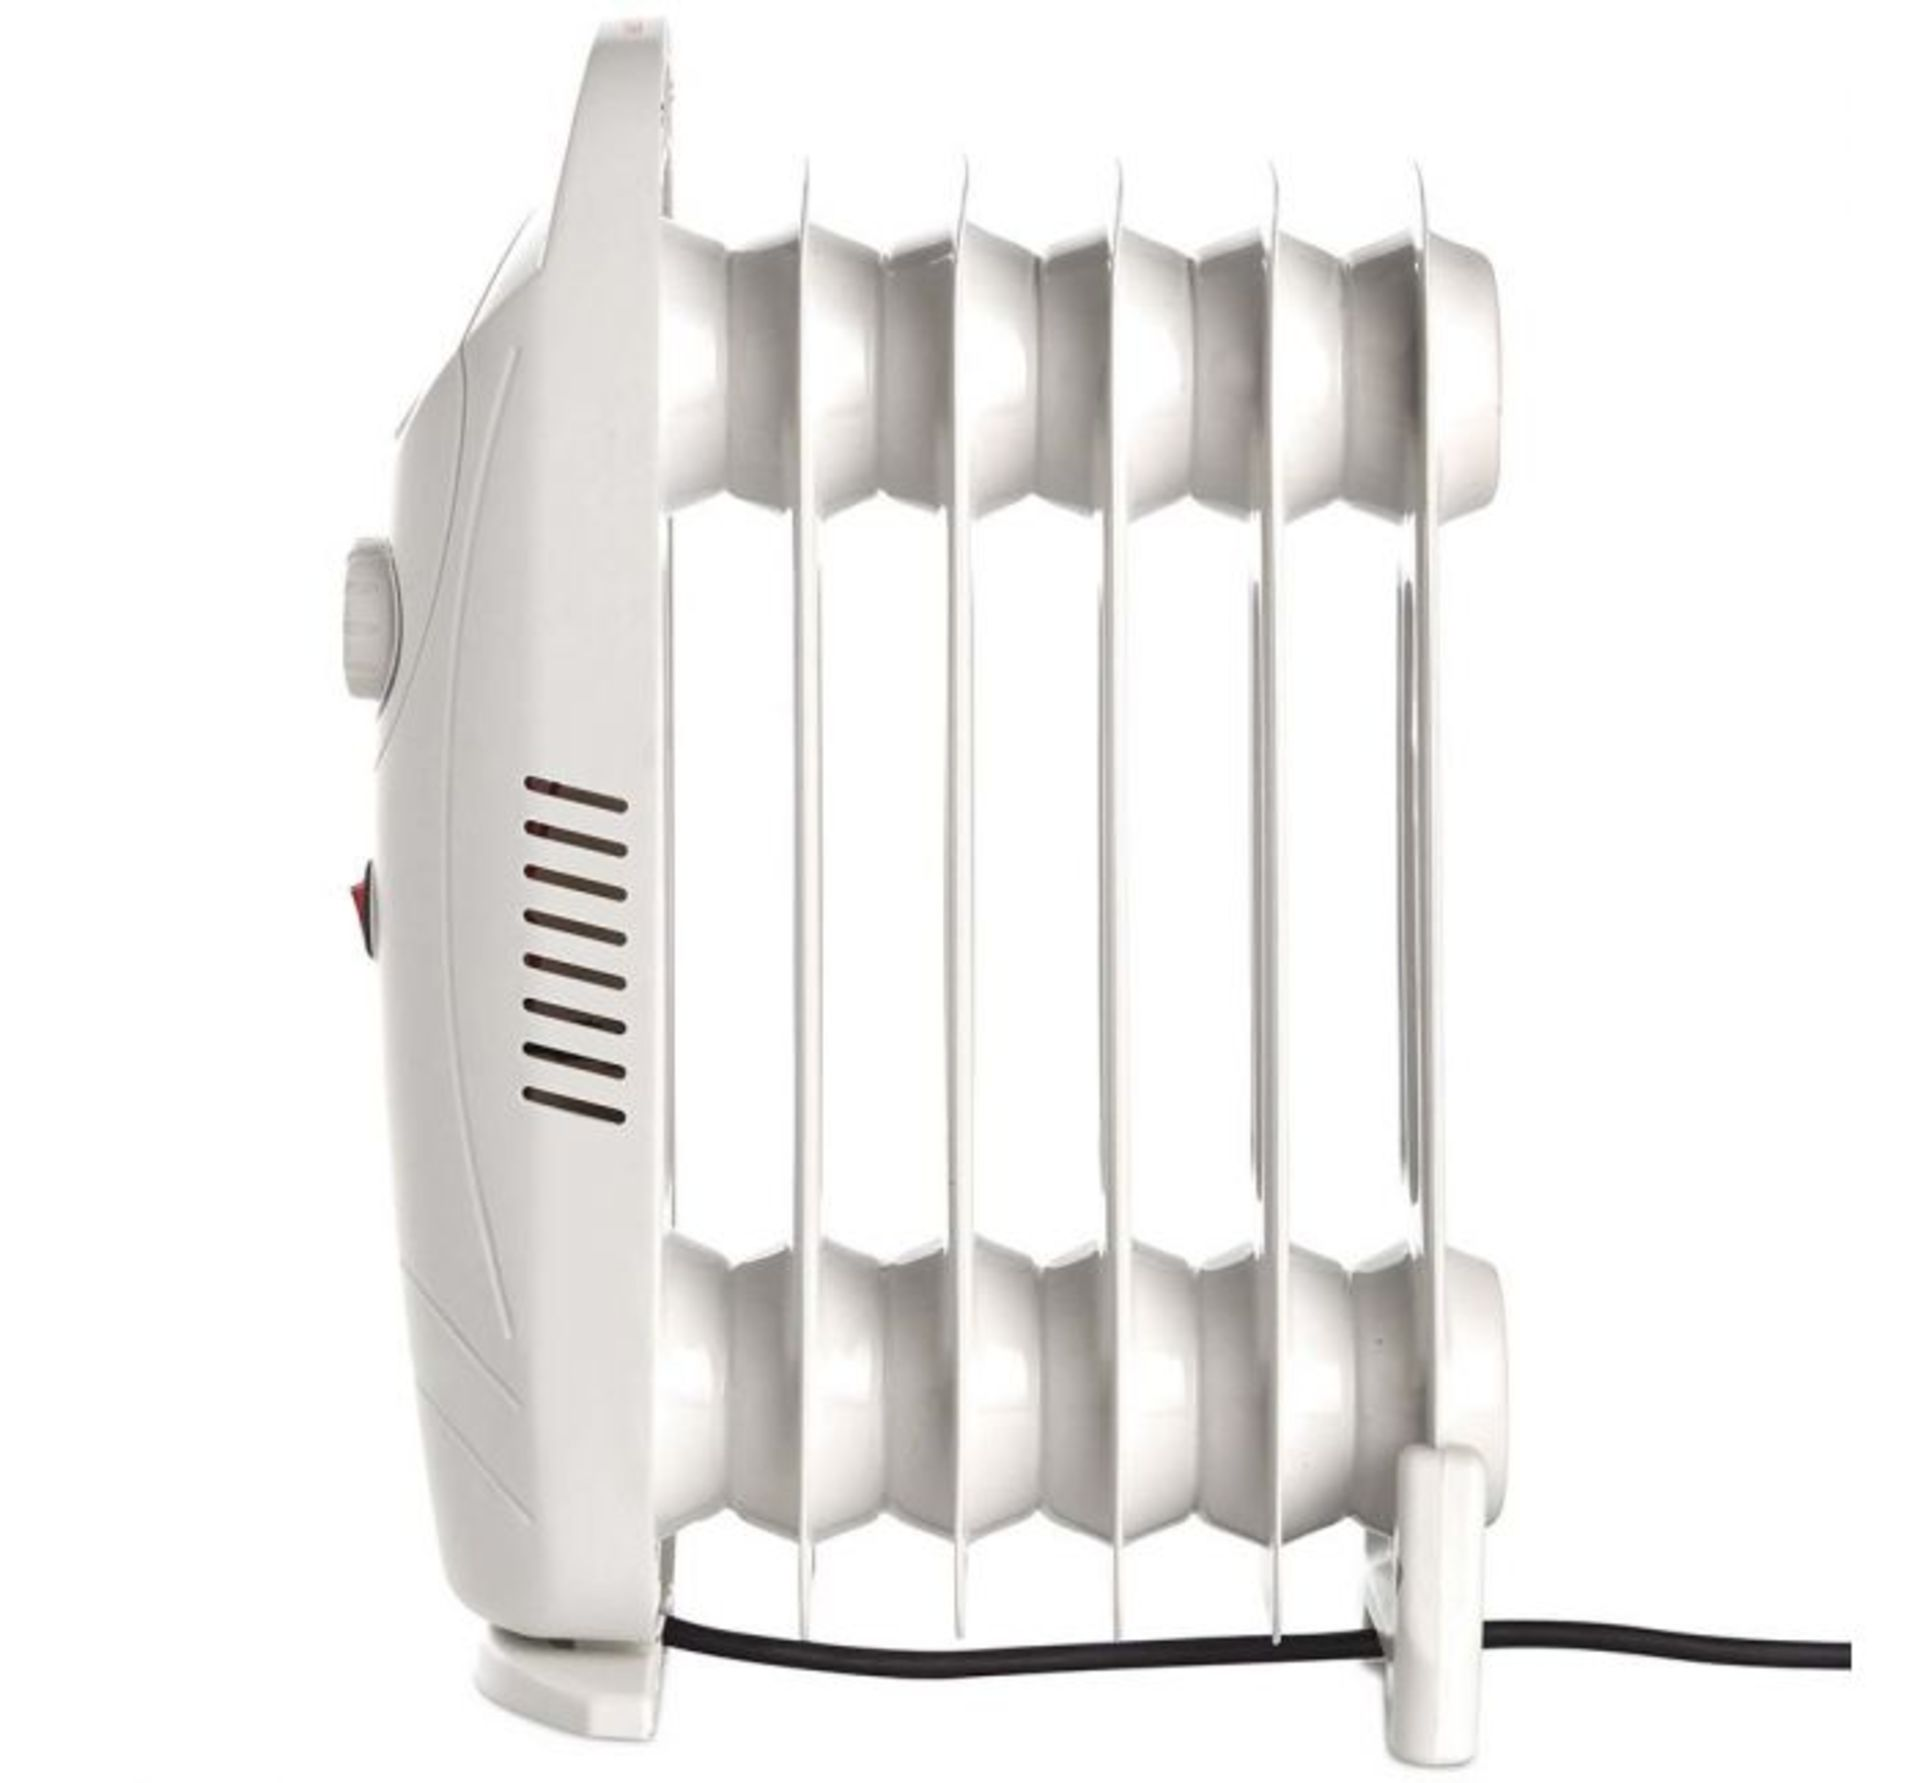 Lot 85 - (X34) 1x 6 Fin 800W Oil Filled Radiator - White. Compact yet powerful 800W radiator with 6 oil-fil